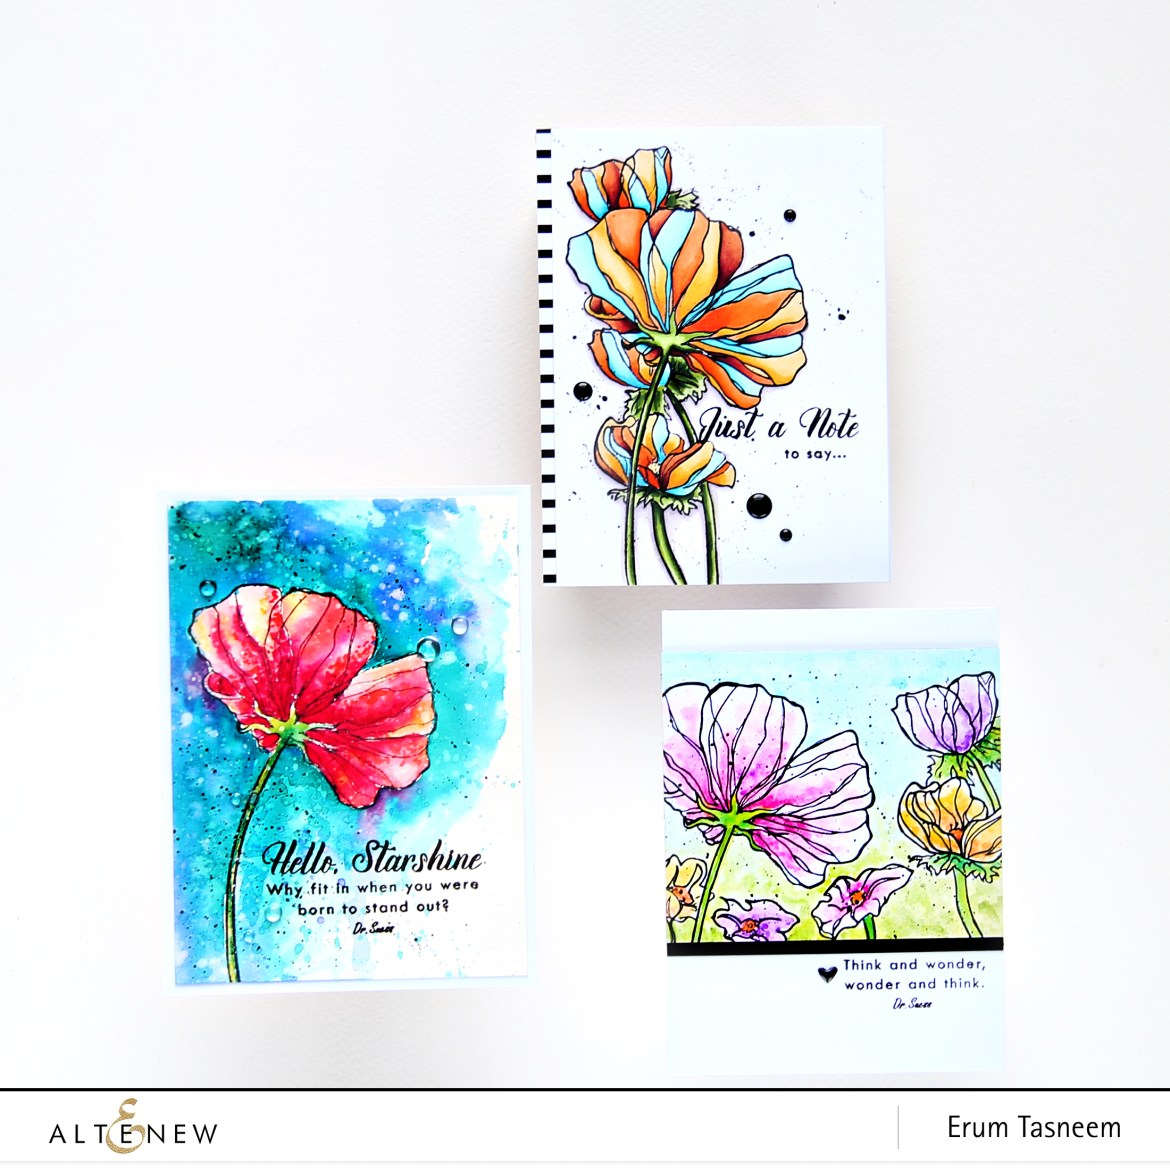 Altenew Wonderland Stamp Set | Erum Tasneem | @pr0digy0